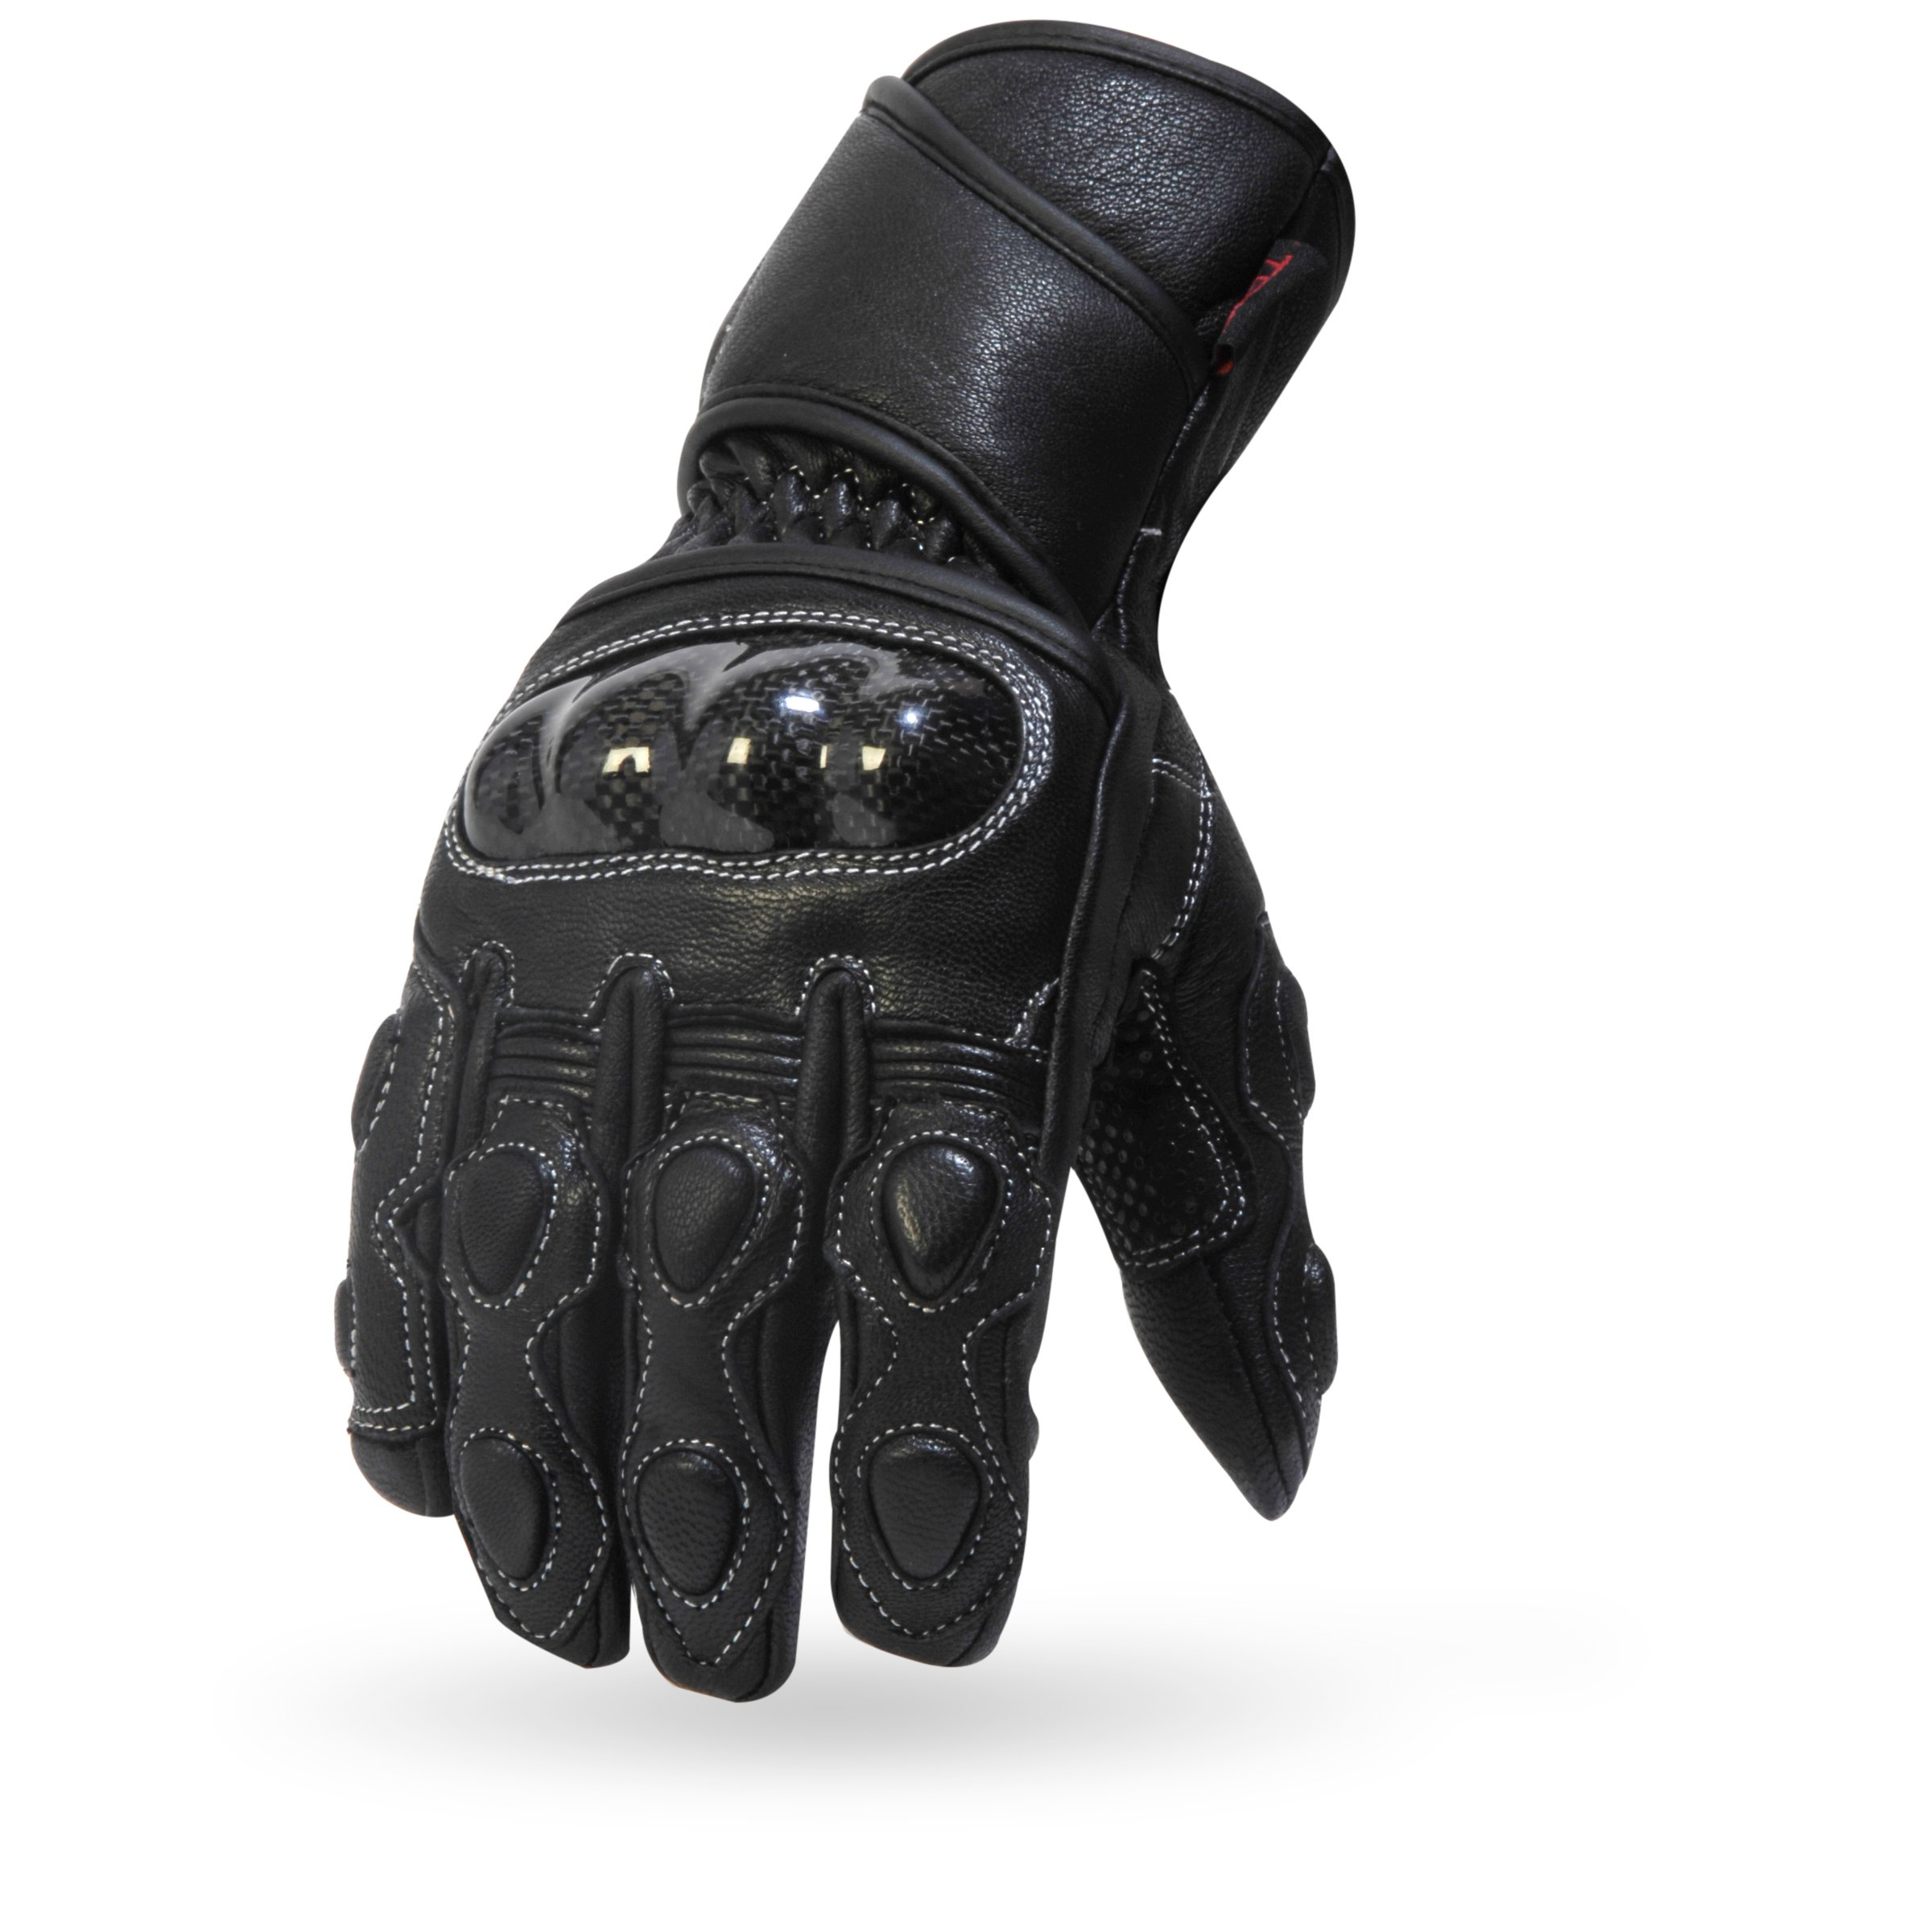 TORC Mens Classic Workman Street Motorcycle Gloves (Malibu Black-Medium)